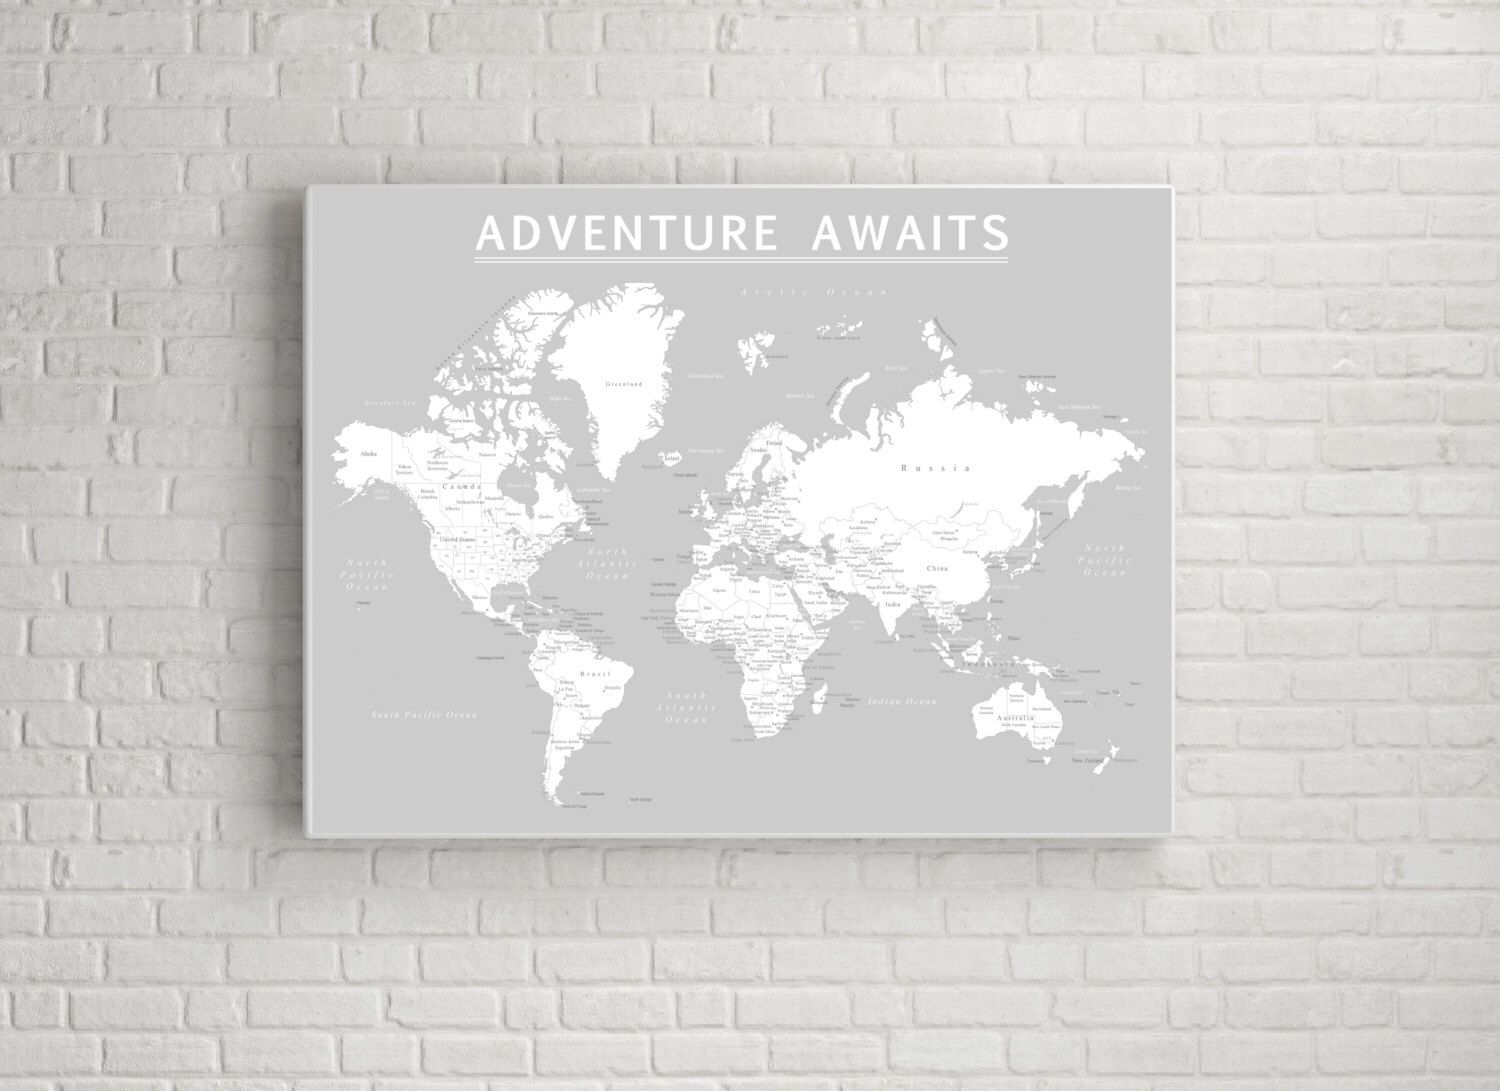 World push pin map print only travel map map poster travel world push pin map print only travel map map poster travel board grey color wedding anniversary gift world 009 by anadventureawaits on etsy gumiabroncs Choice Image